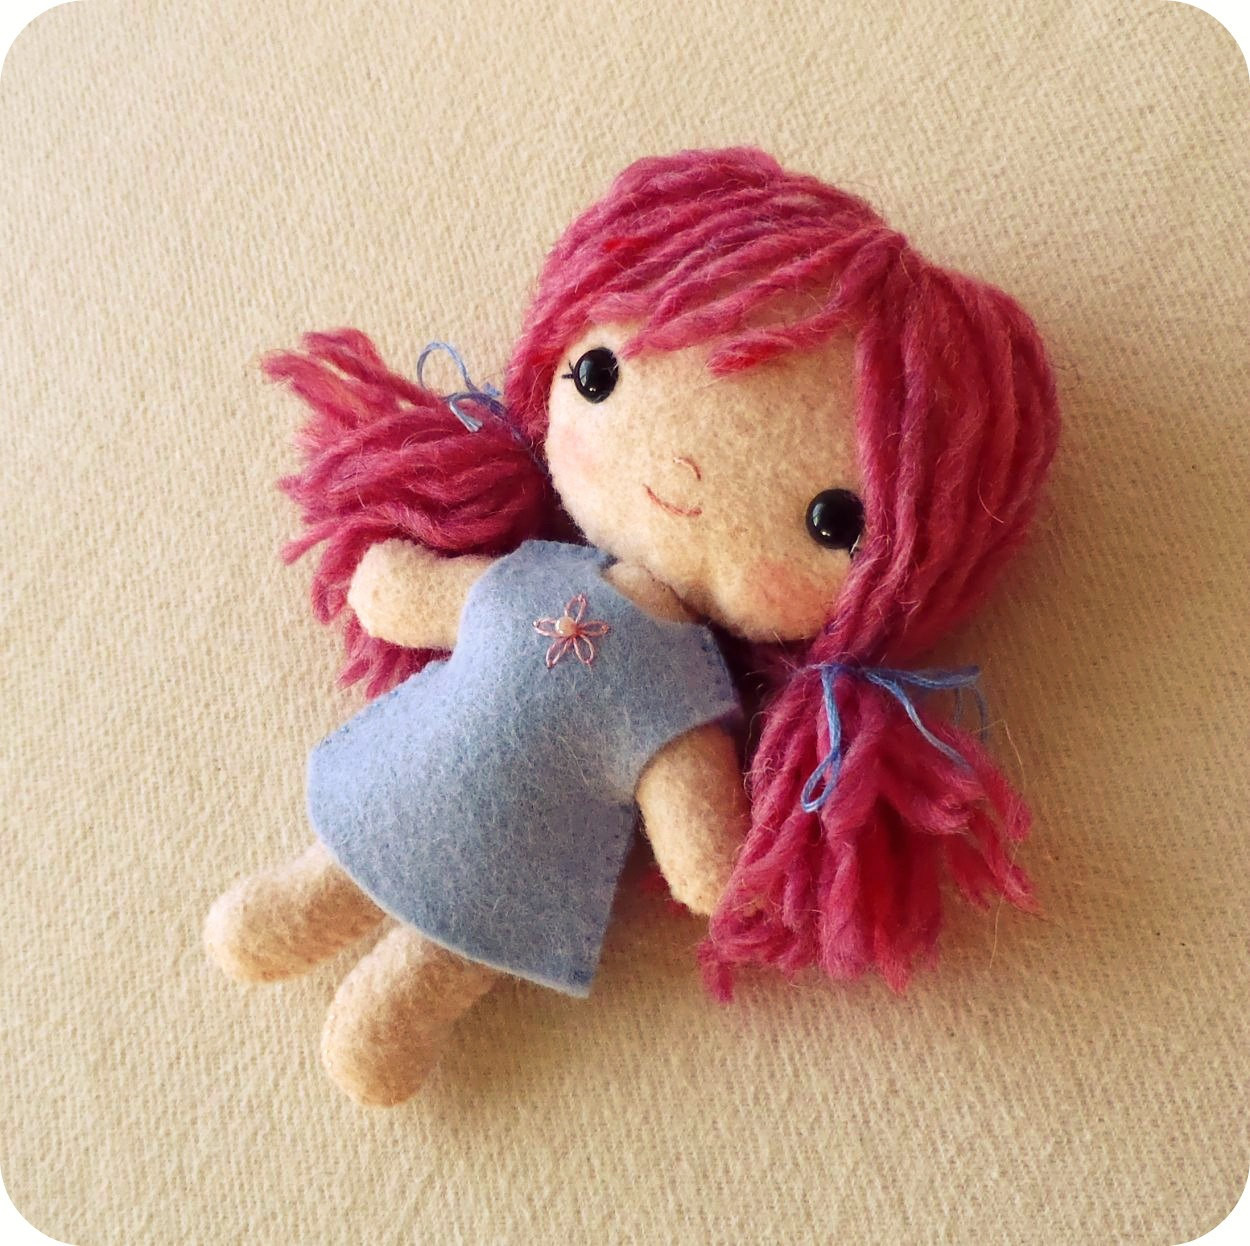 Doll Patterns Inspirational Doll Pdf Pattern Doll Pattern Plush Doll Easy Pattern Of Doll Patterns Best Of My Rag Doll Adorable Dolls to Sew